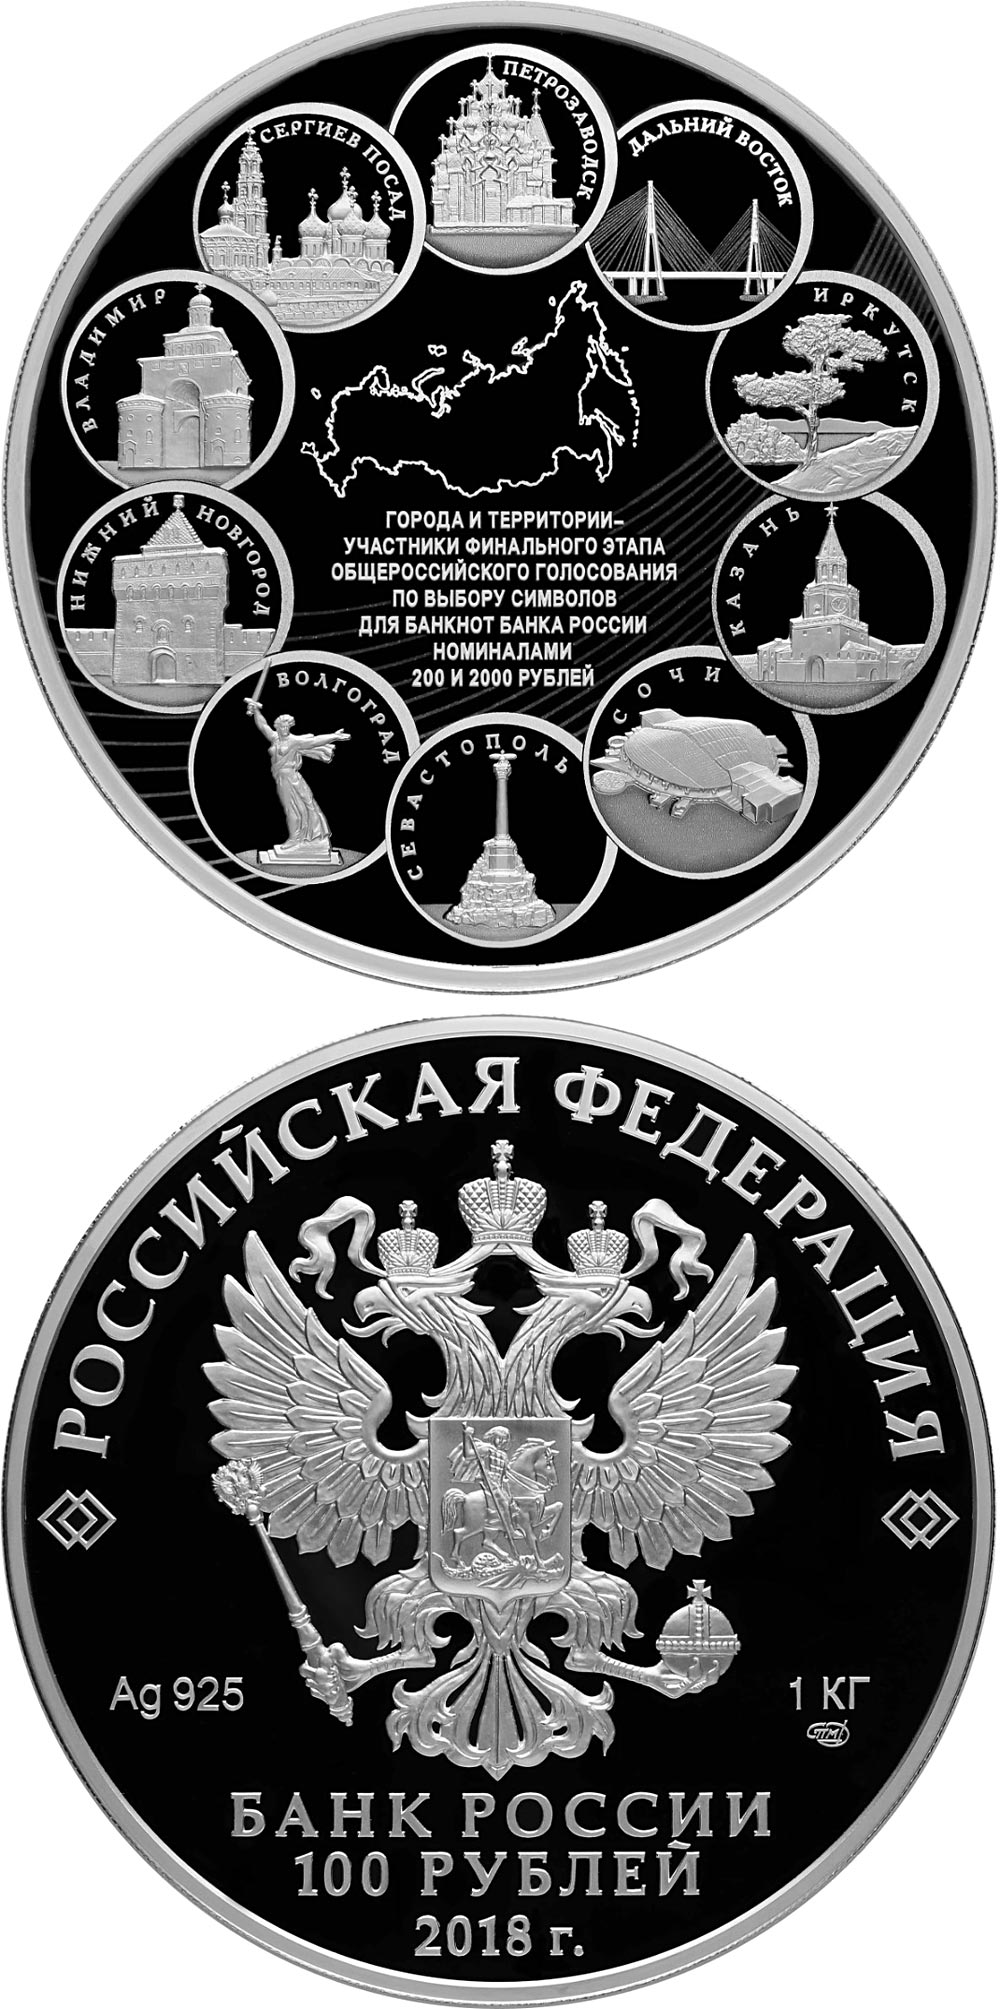 Image of 100 rubles coin - Cities and territories participants of the final round of the all-Russian voting to select symbols for the Bank of Russia 200- and 2,000-ruble banknotes | Russia 2018.  The Silver coin is of proof-like quality.